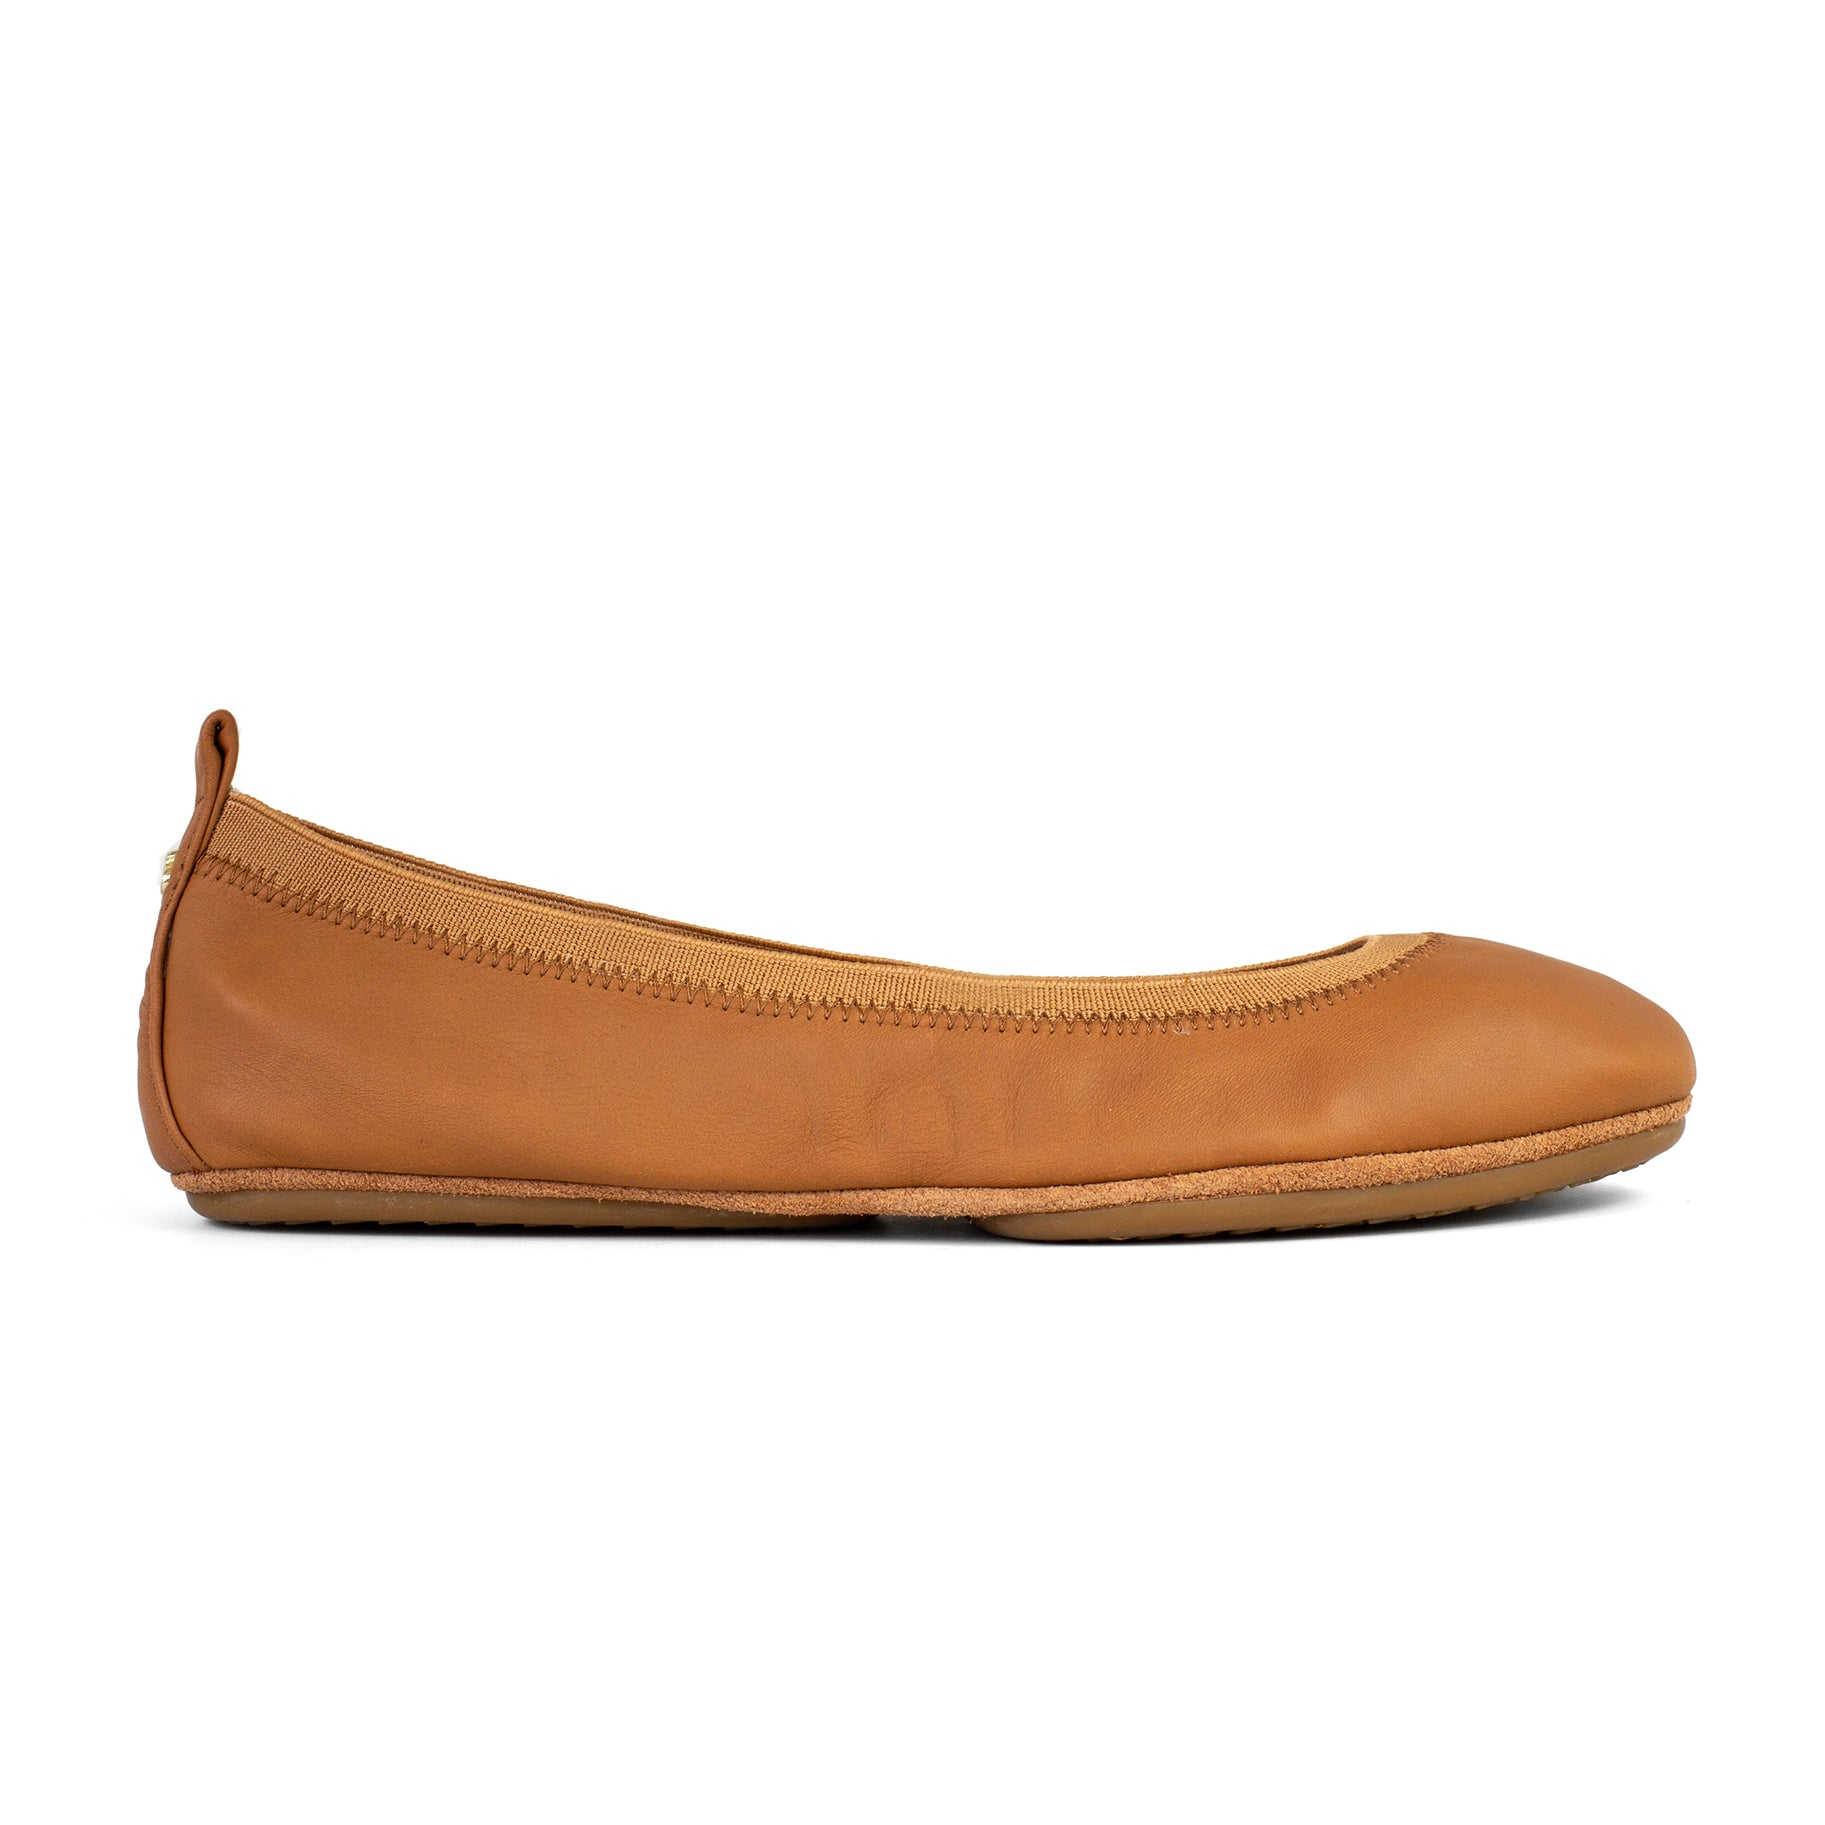 Yosi Samra Whiskey Brown Leather Ballet Flat